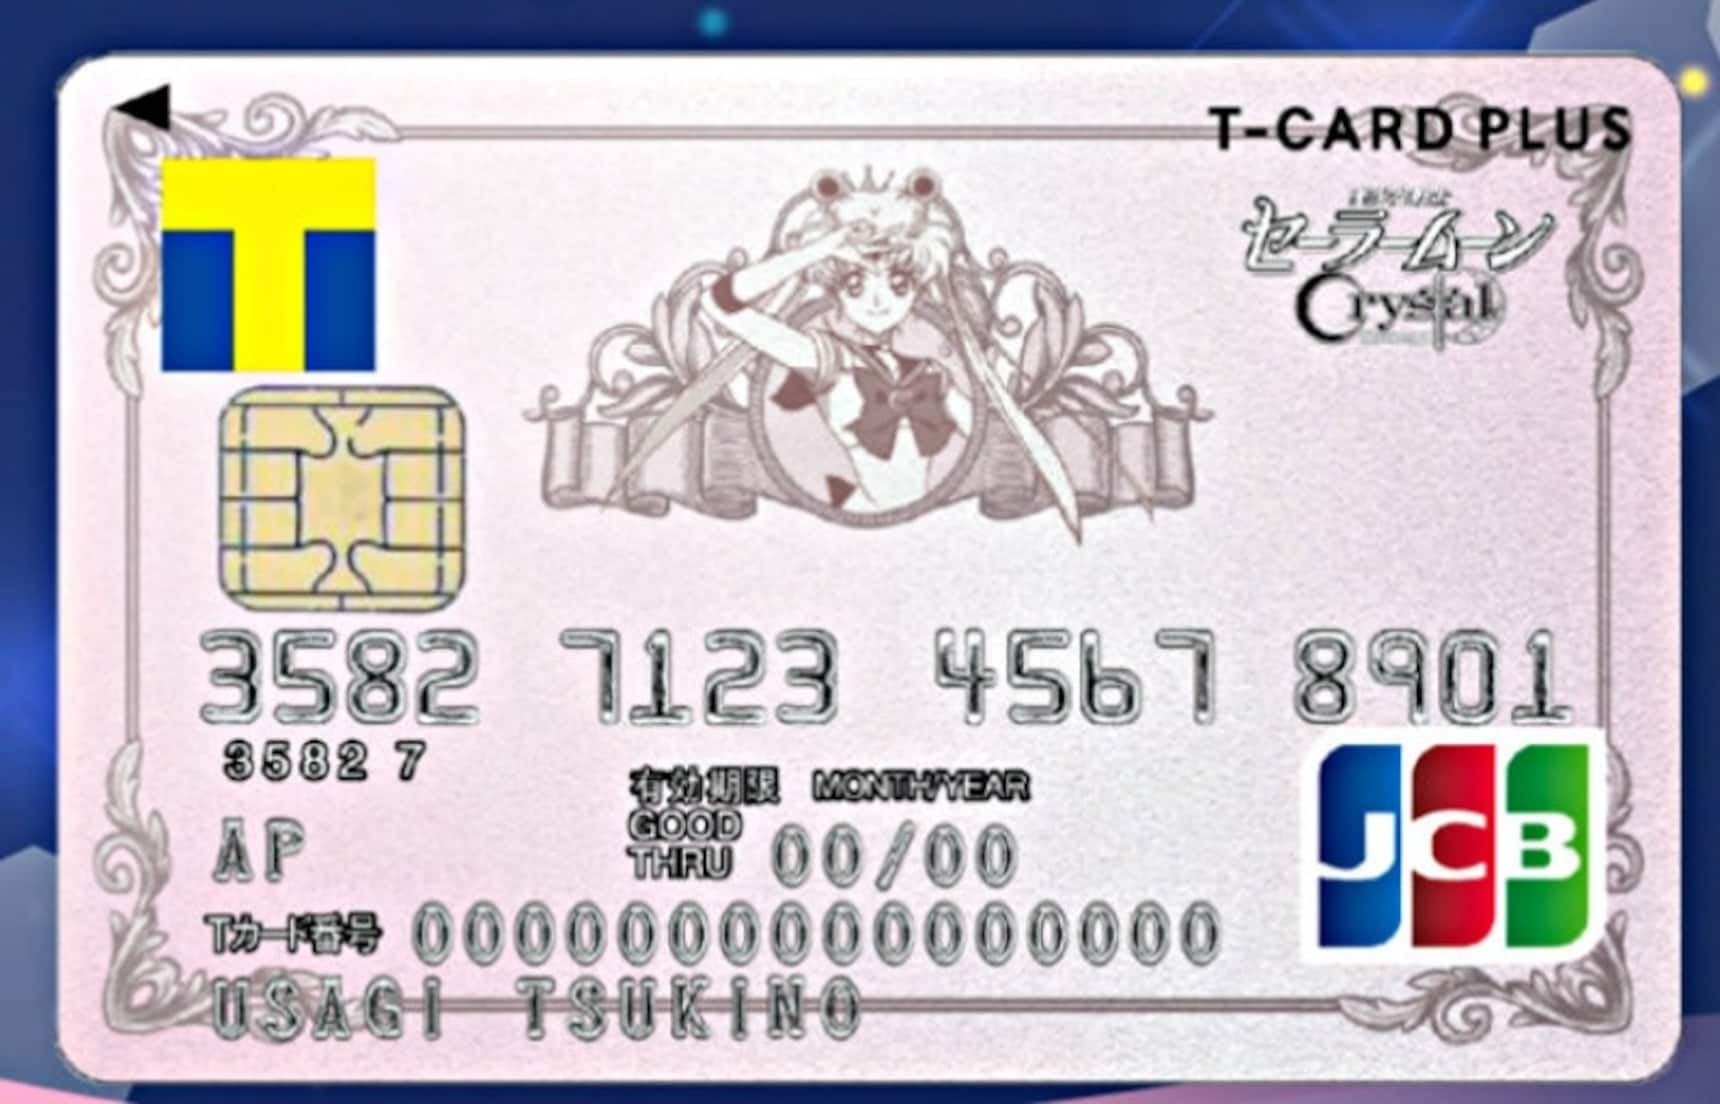 Cash, Credit or Moon Prism Power?